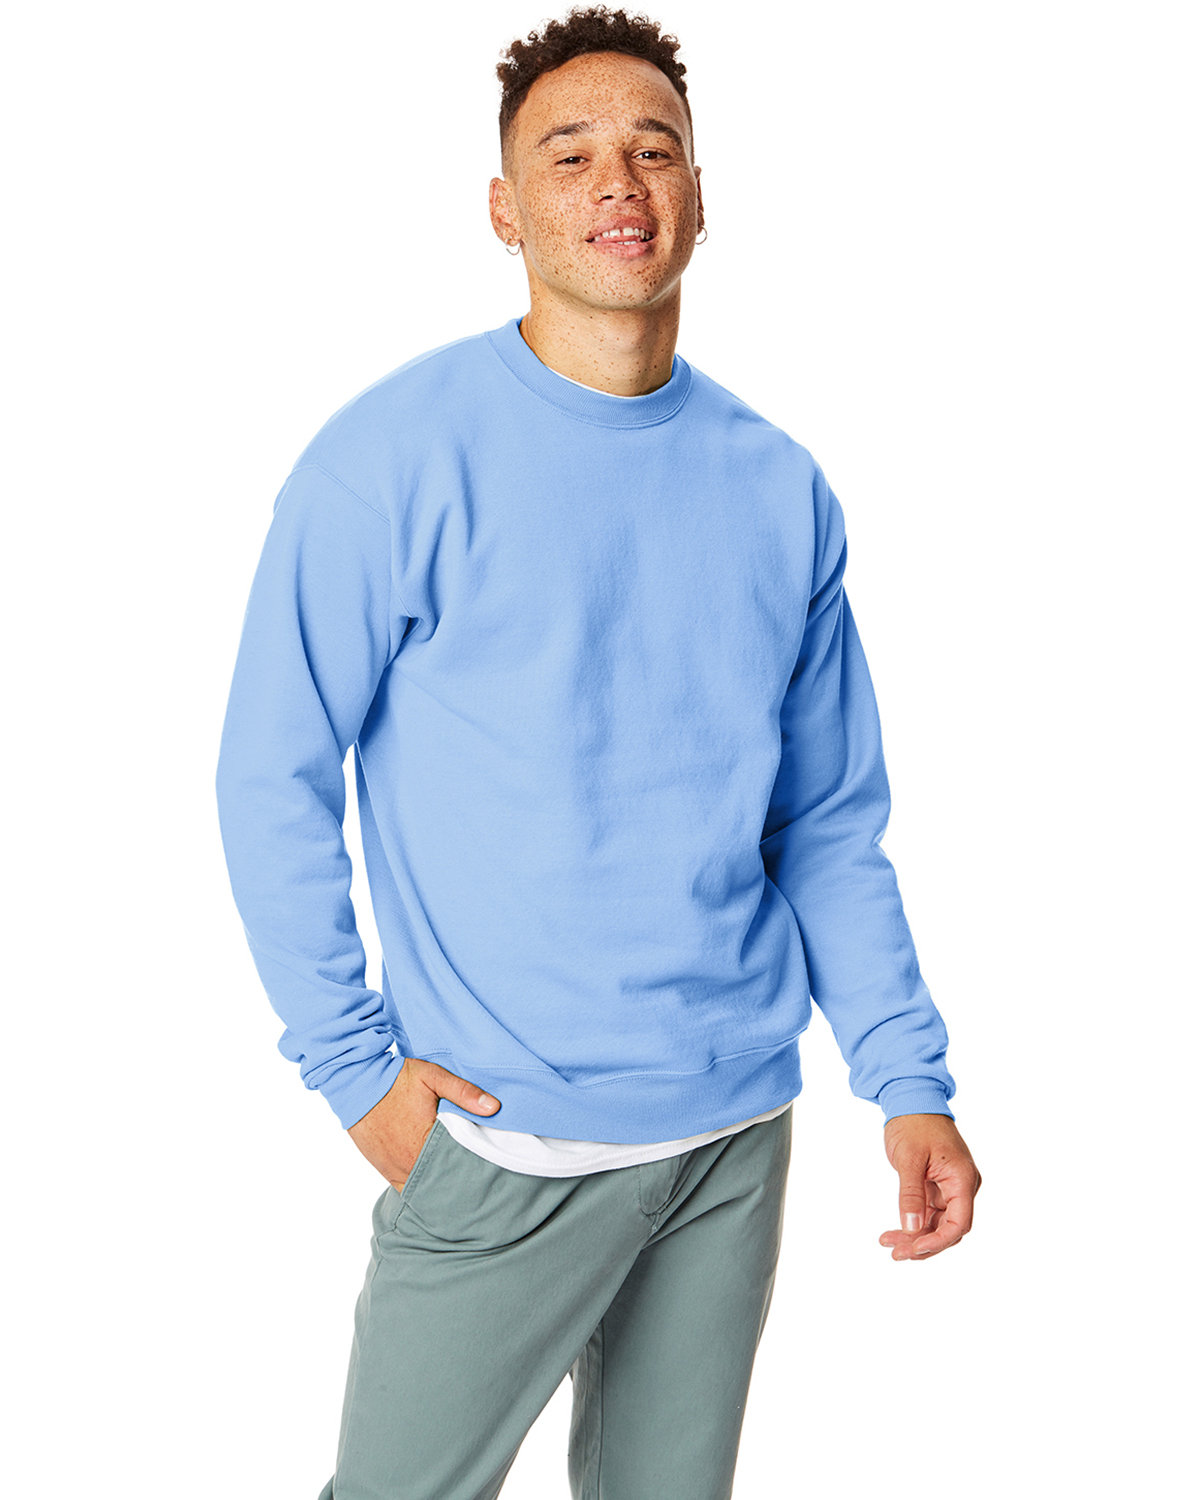 Hanes Unisex 7.8 oz., Ecosmart® 50/50 Crewneck Sweatshirt LIGHT BLUE